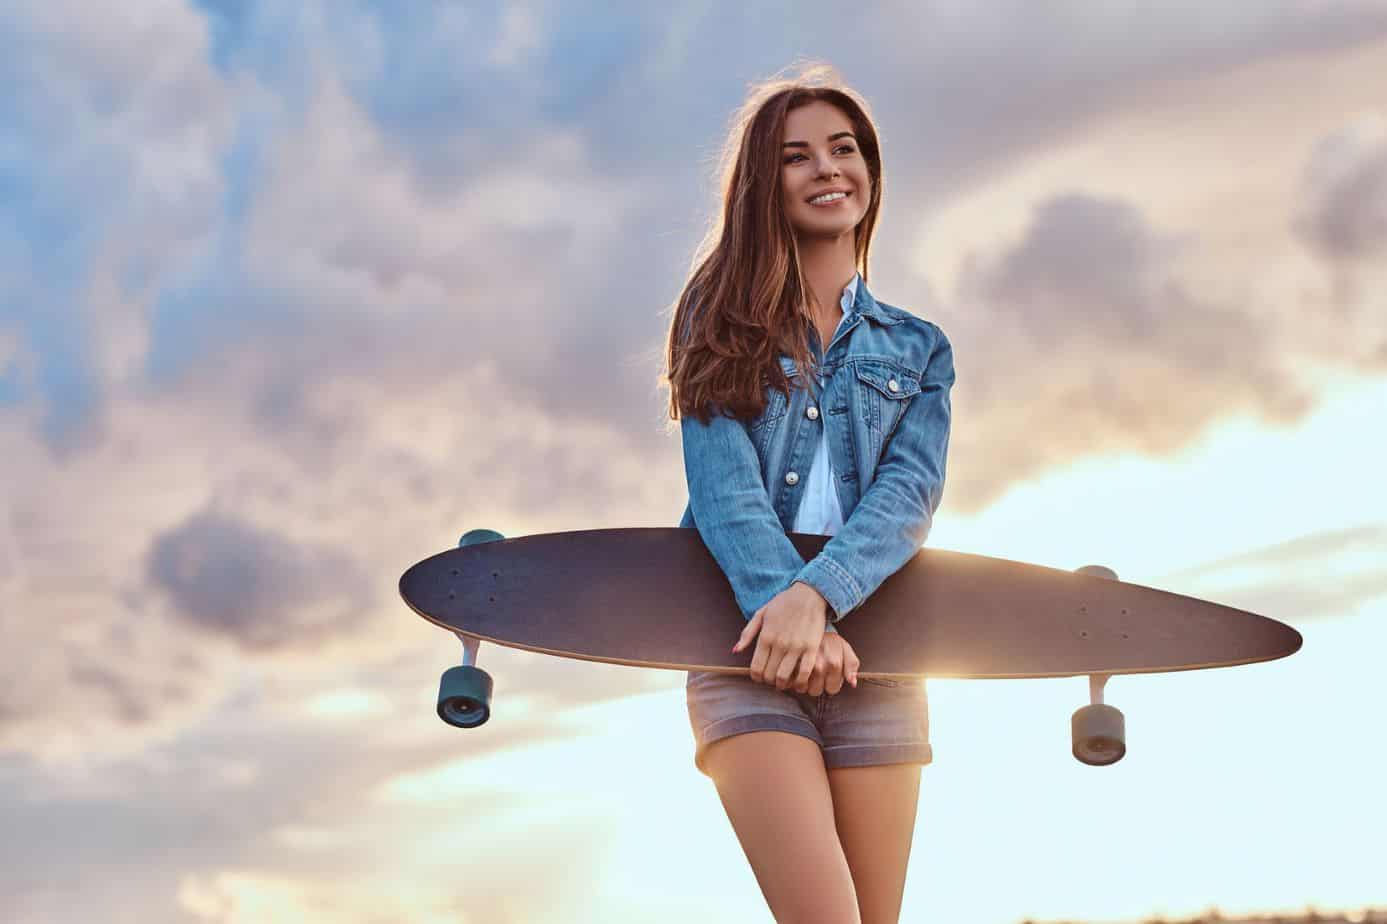 What Is A Pintail Longboard?